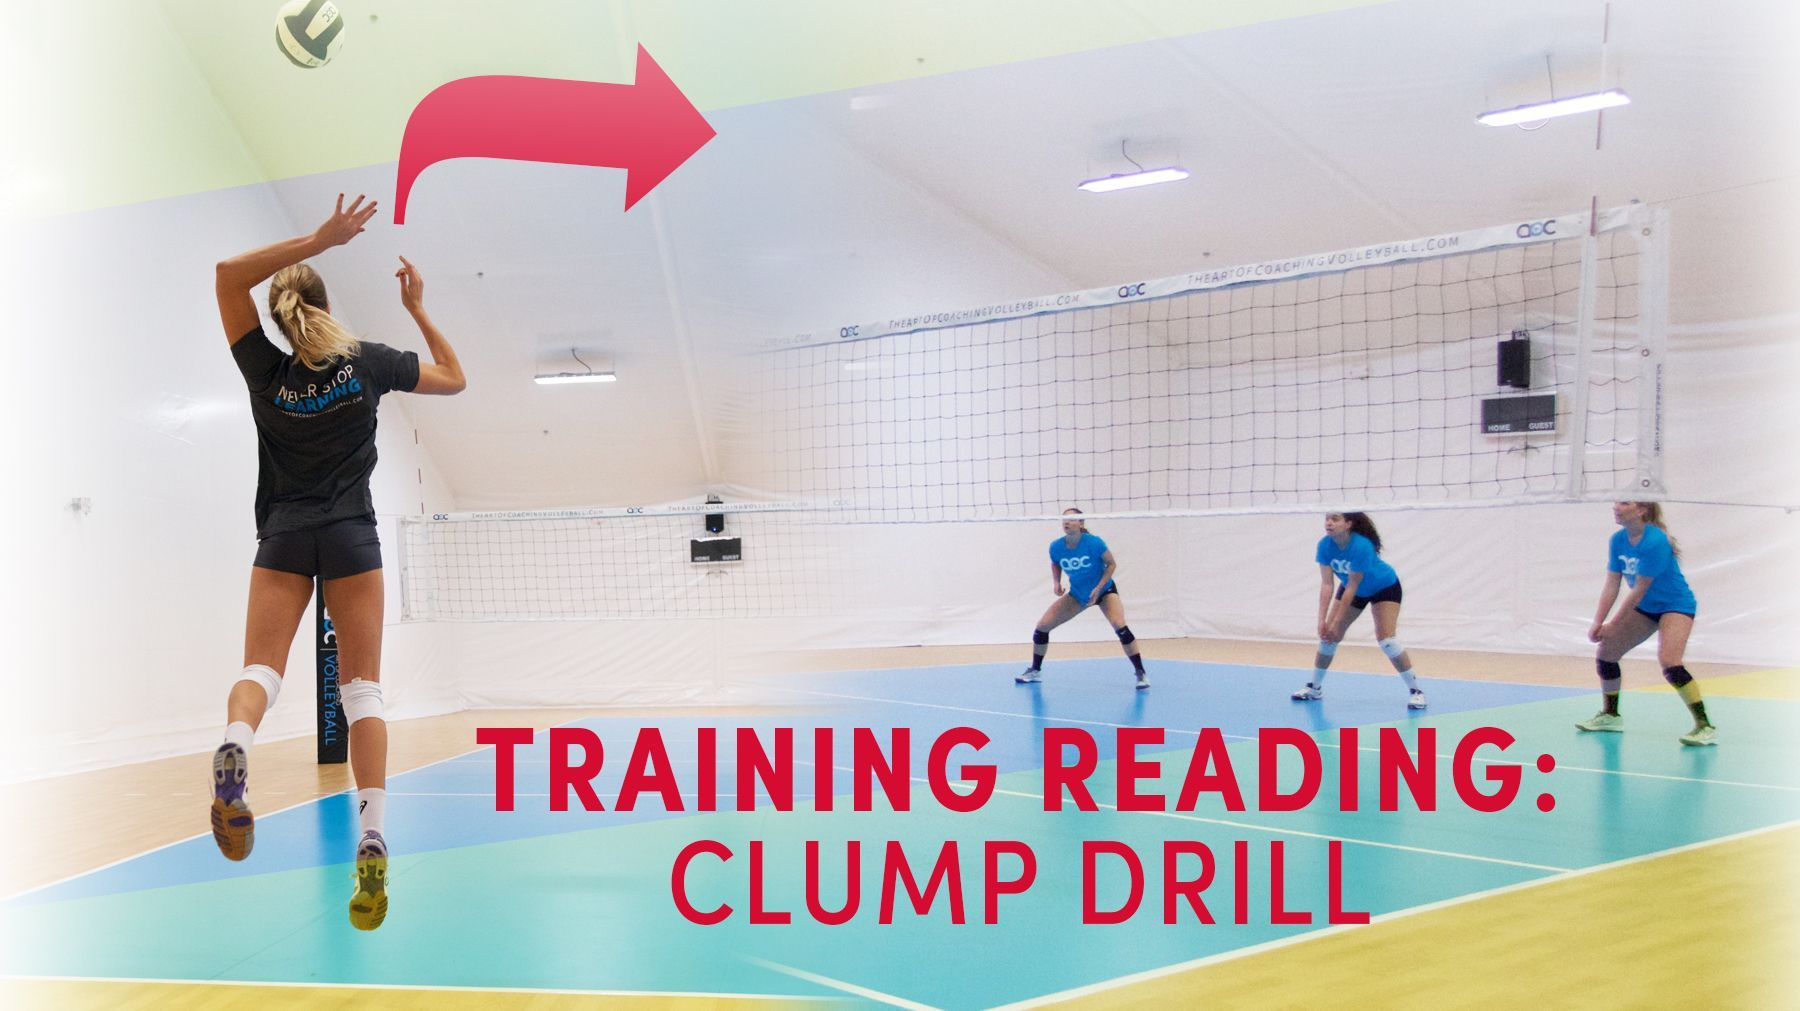 Training Reading In Serve Receive Clump Drill The Art Of Coaching Volleyball Coaching Volleyball Volleyball Drills Volleyball Skills